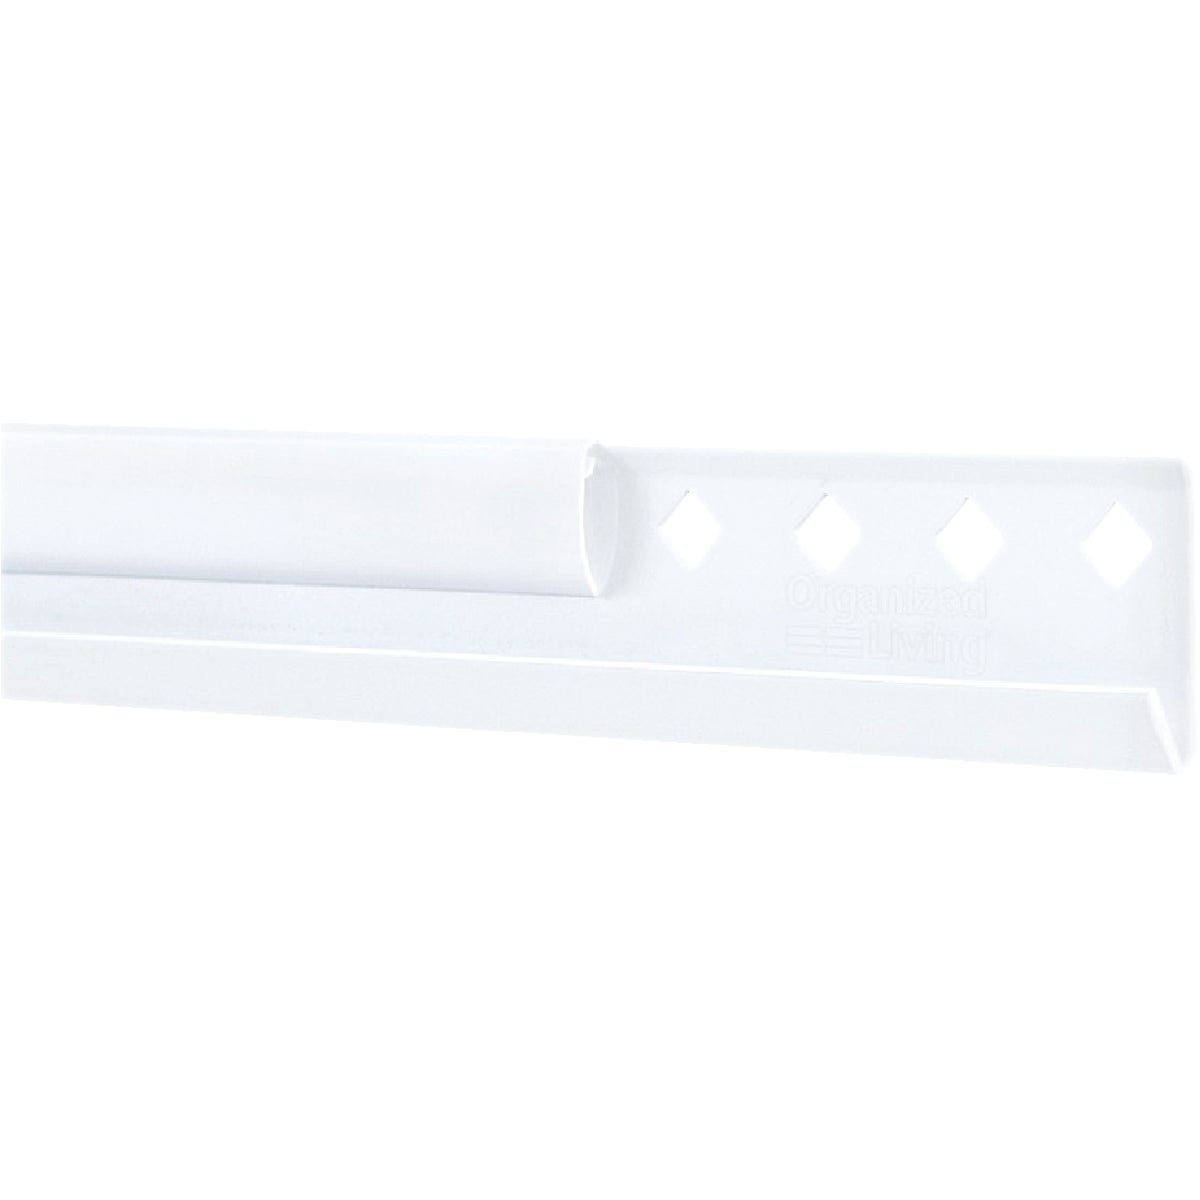 "40"" WHITE HANGING RAIL - 7913444011 by Schulte Corp"